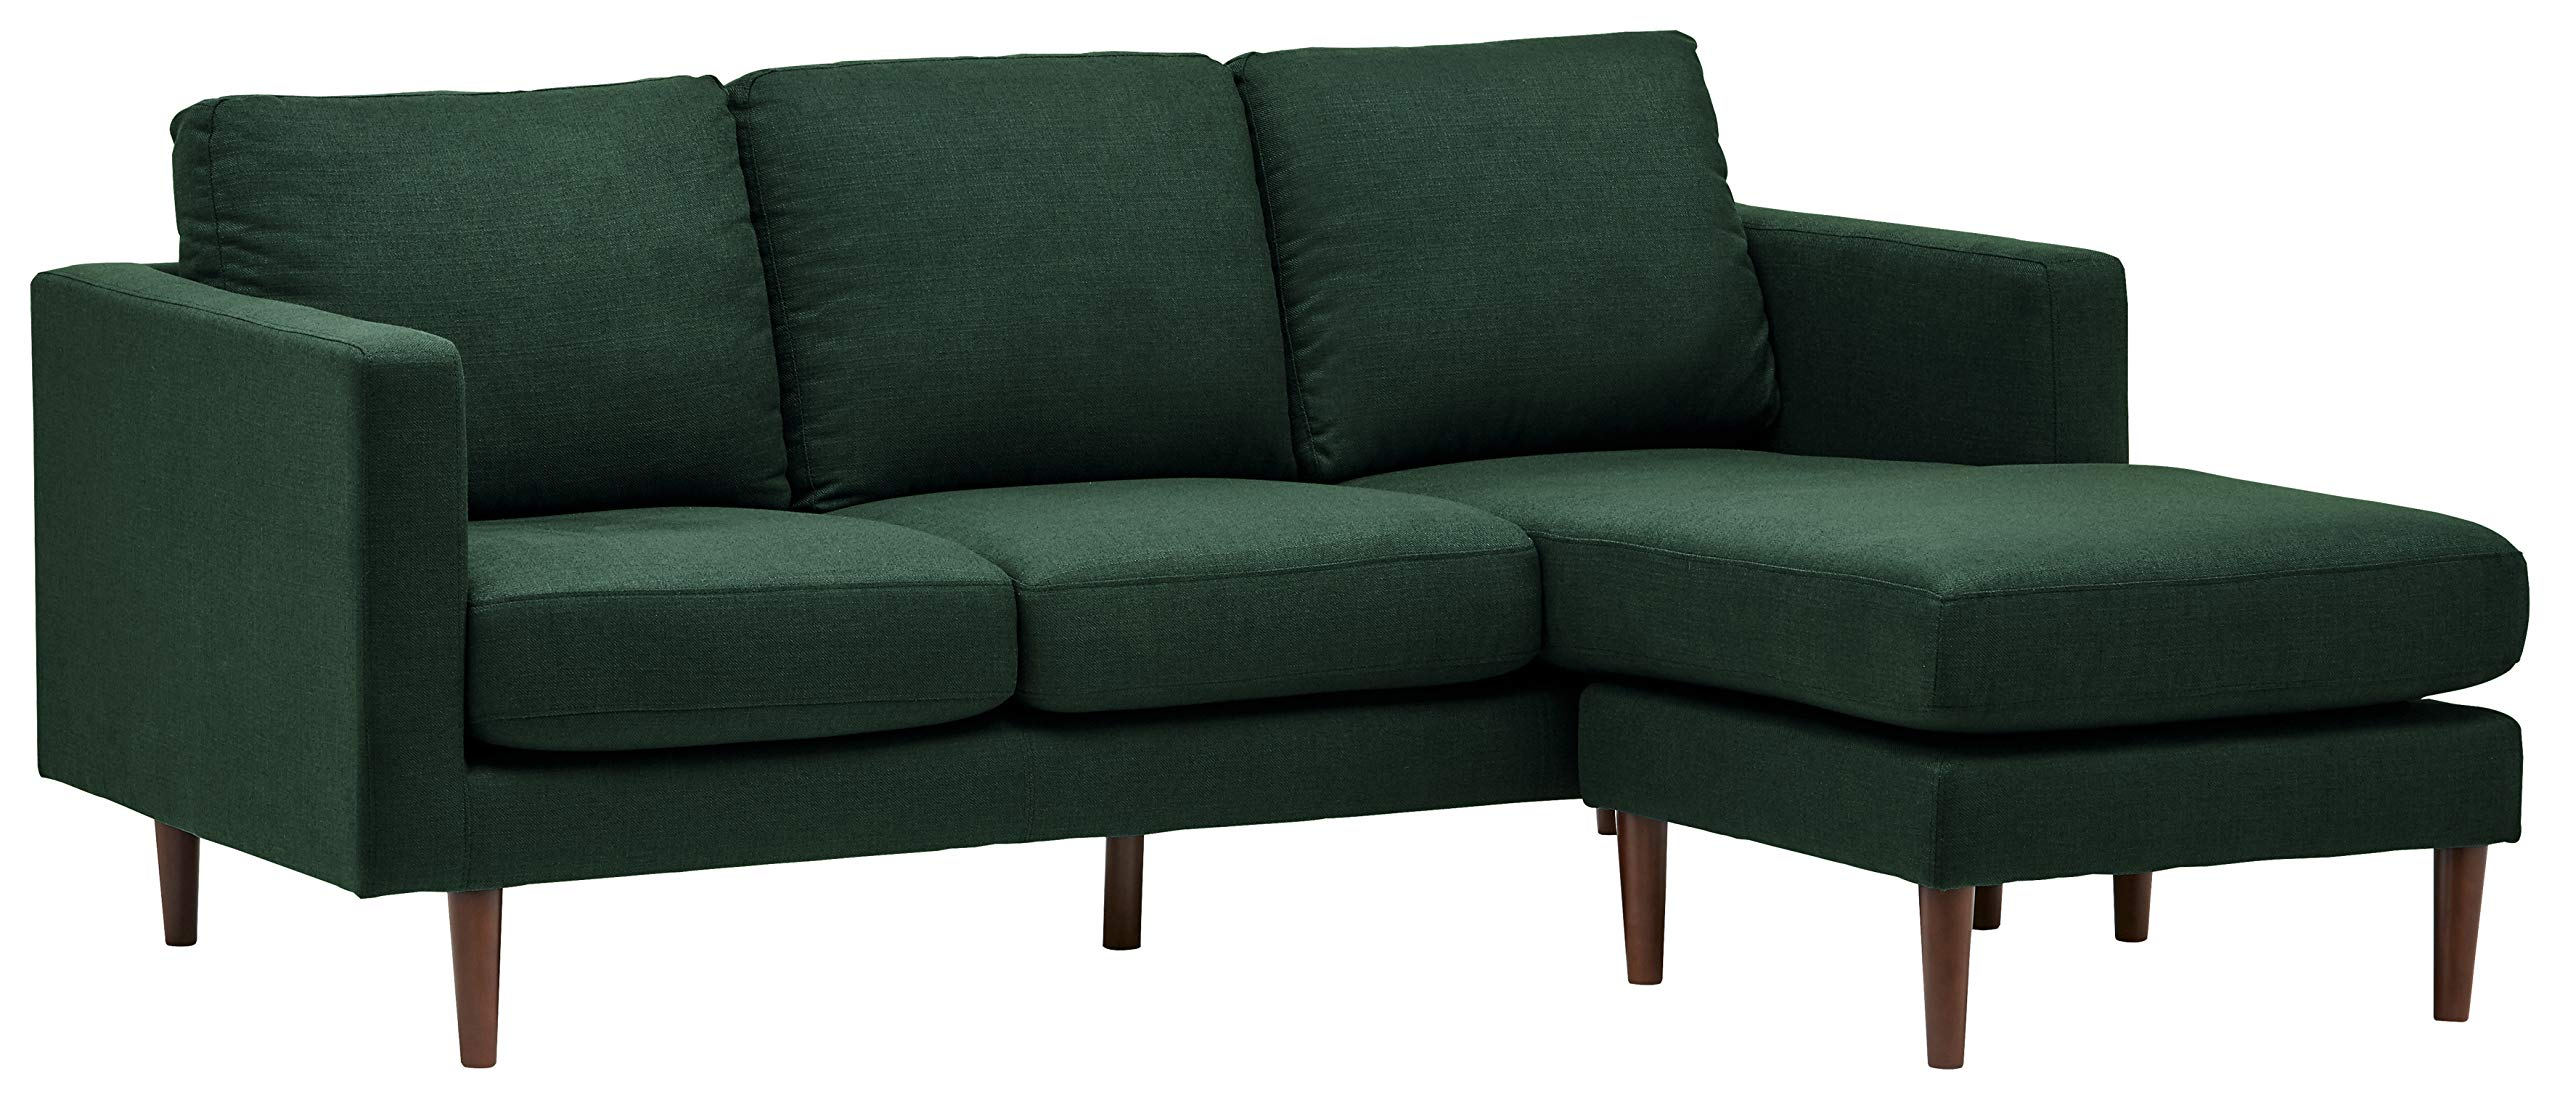 Rivet Revolve Modern Upholstered Sectional with Chaise Longue, 79.9''W, Heritage by Rivet